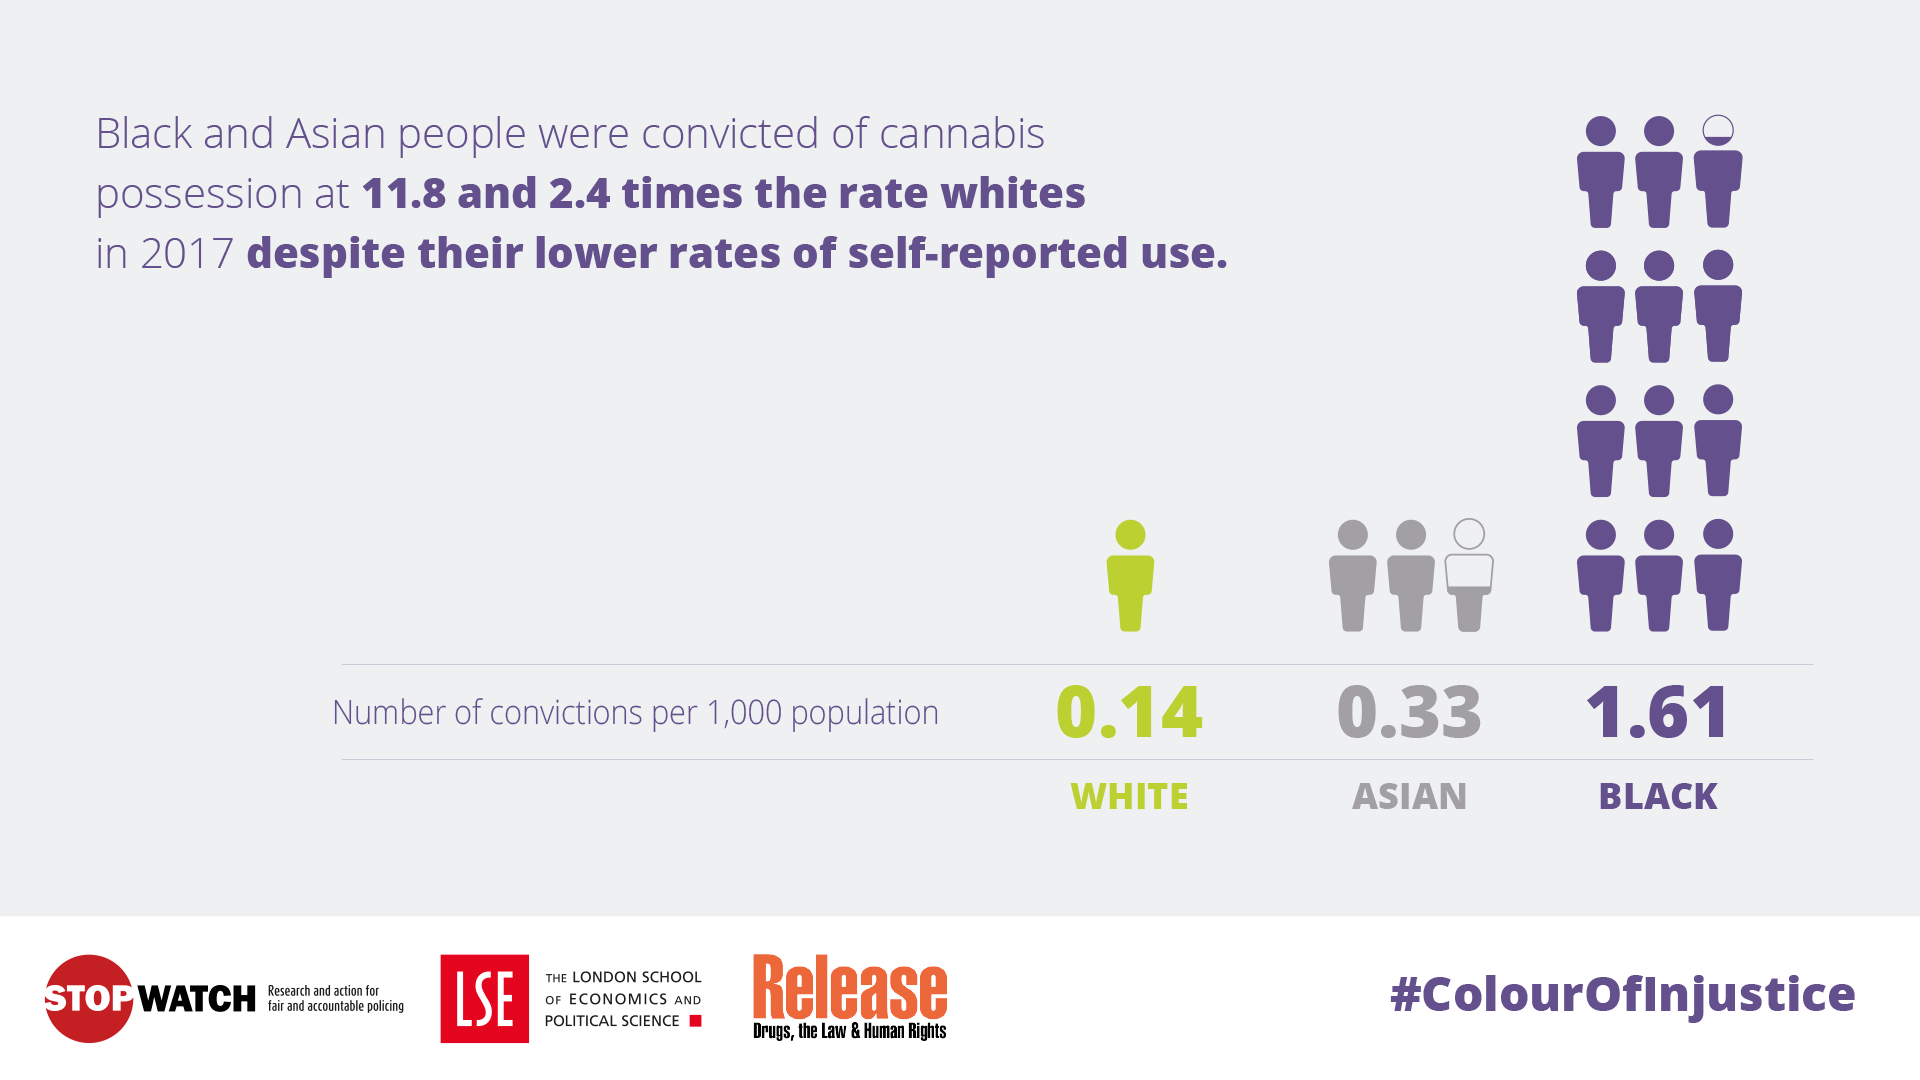 Despite using cannabis at a lower rate than white people, black and Asian people were convicted of cannabis possession at 11.8 and 2.4 times (respectively) the rate of white people.